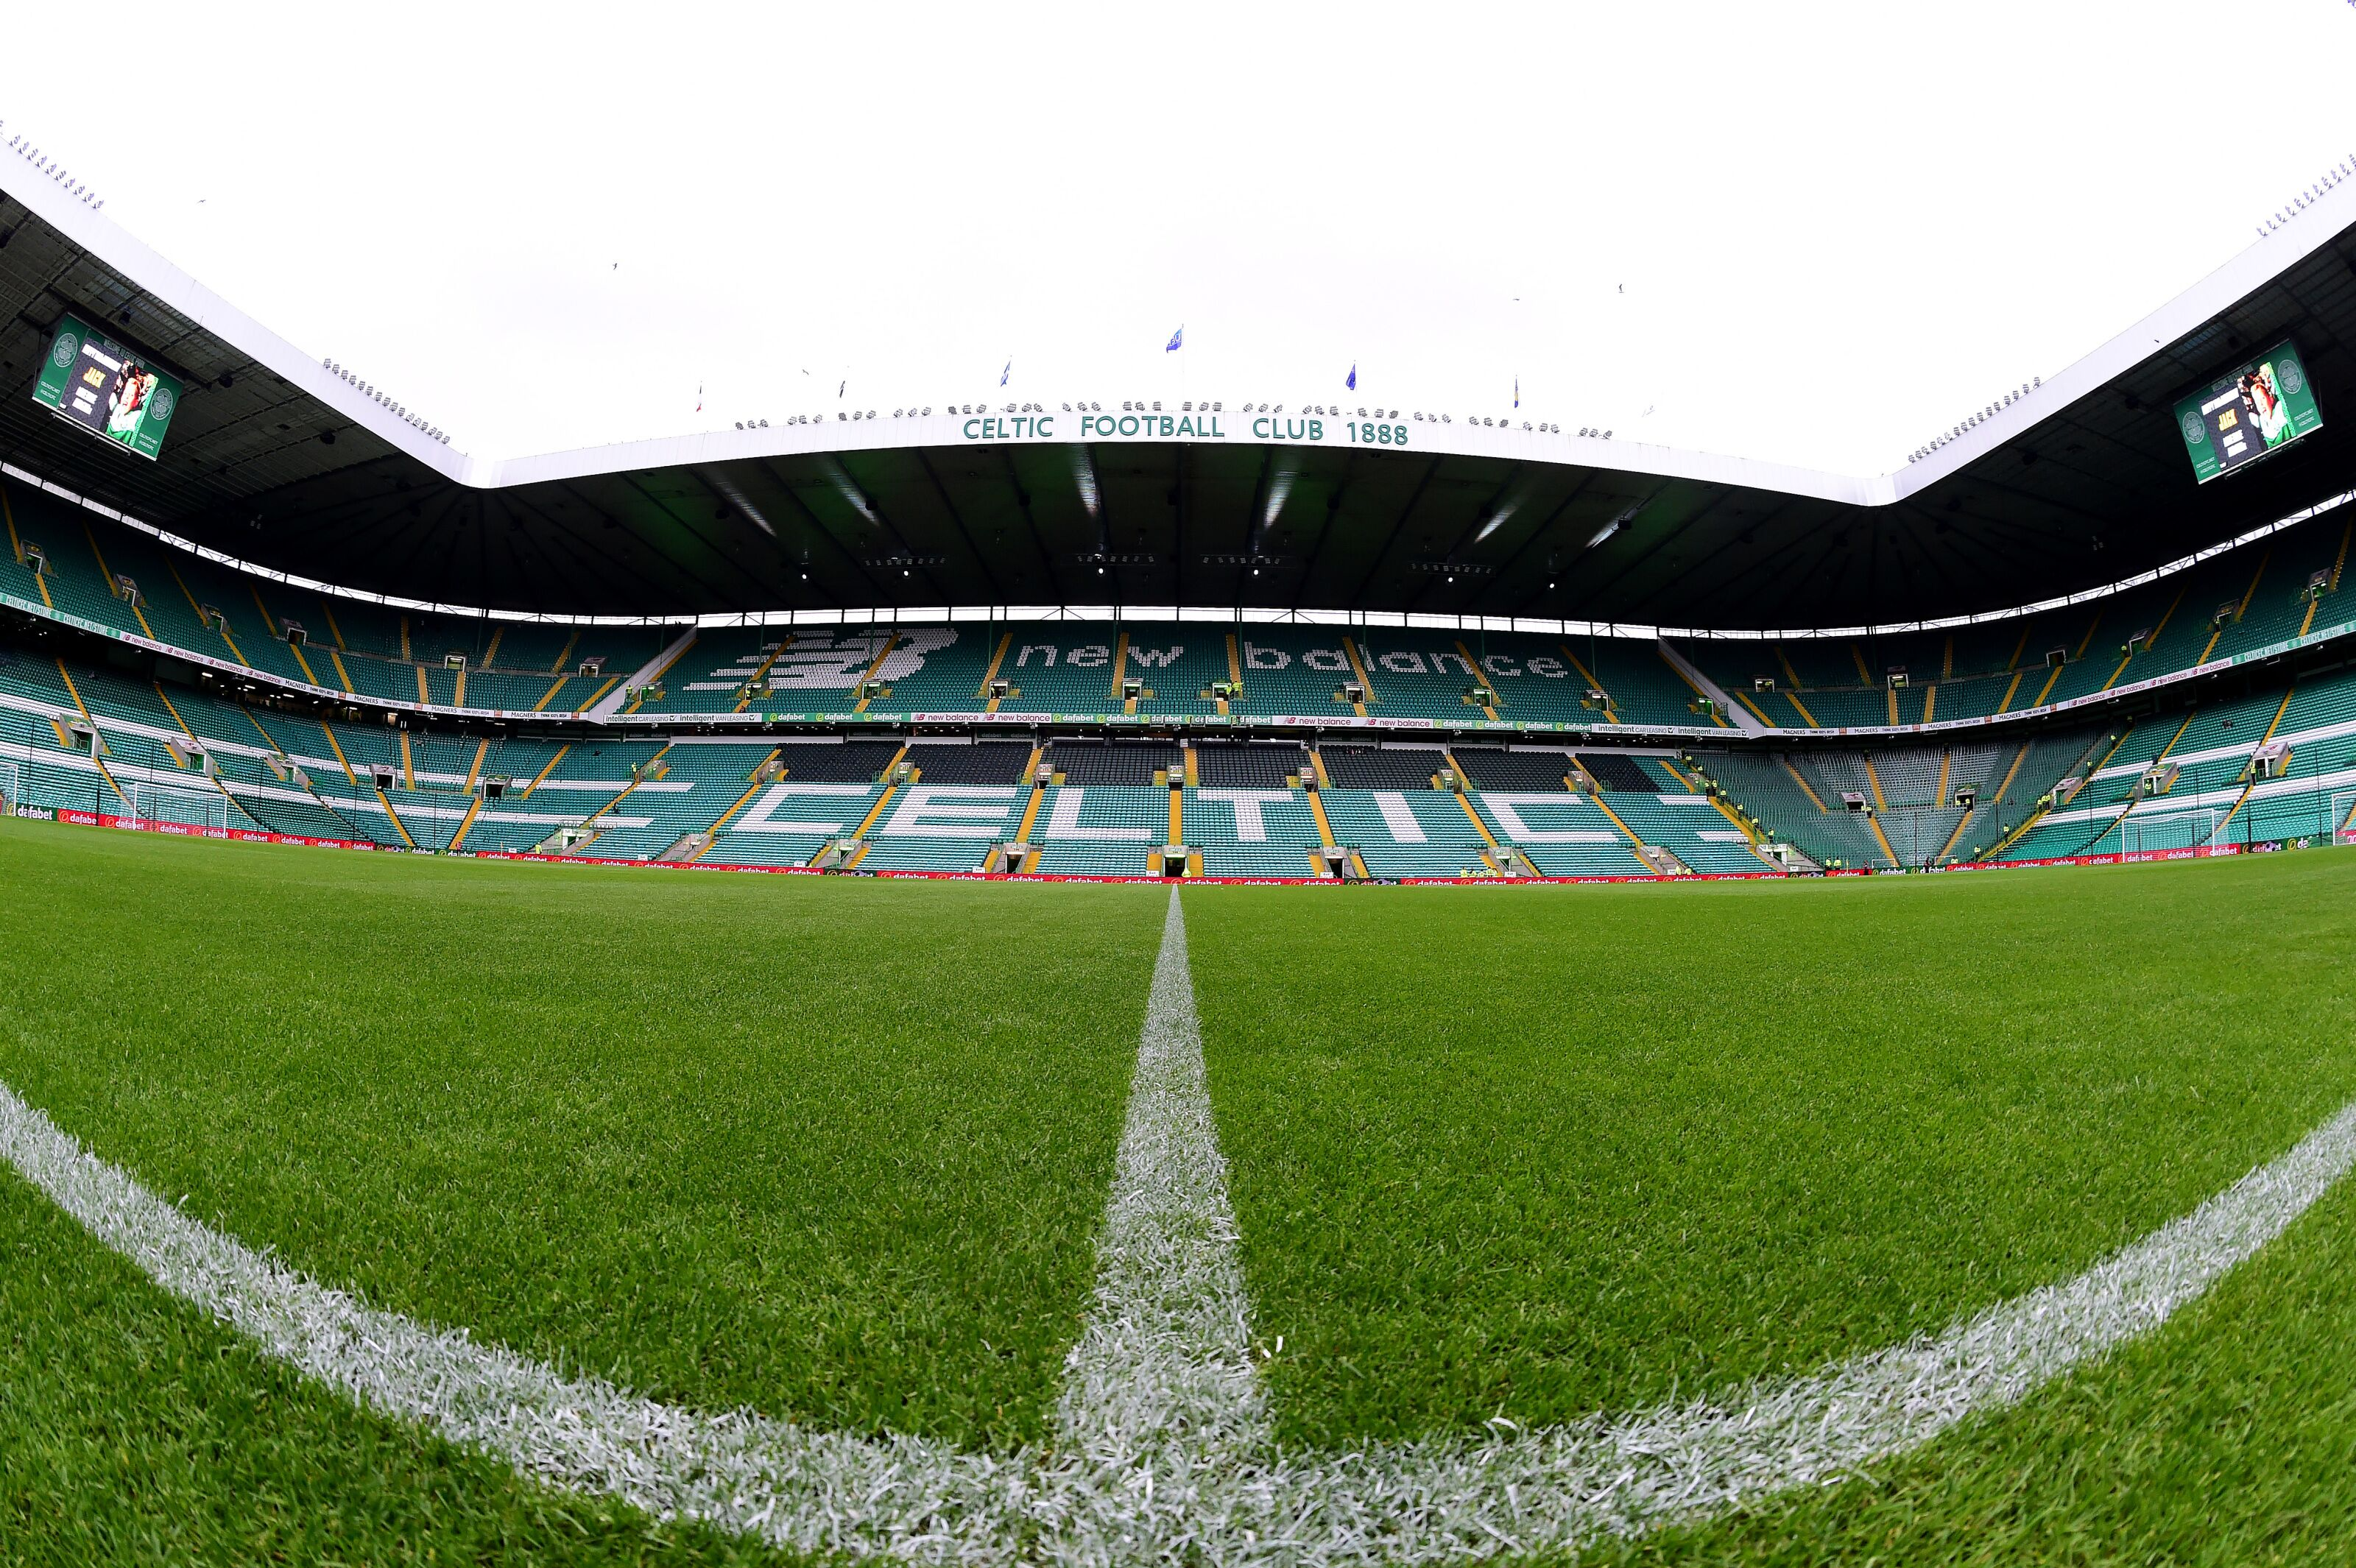 Rennes v Celtic FC: How to Watch, Live Stream, TV Channel